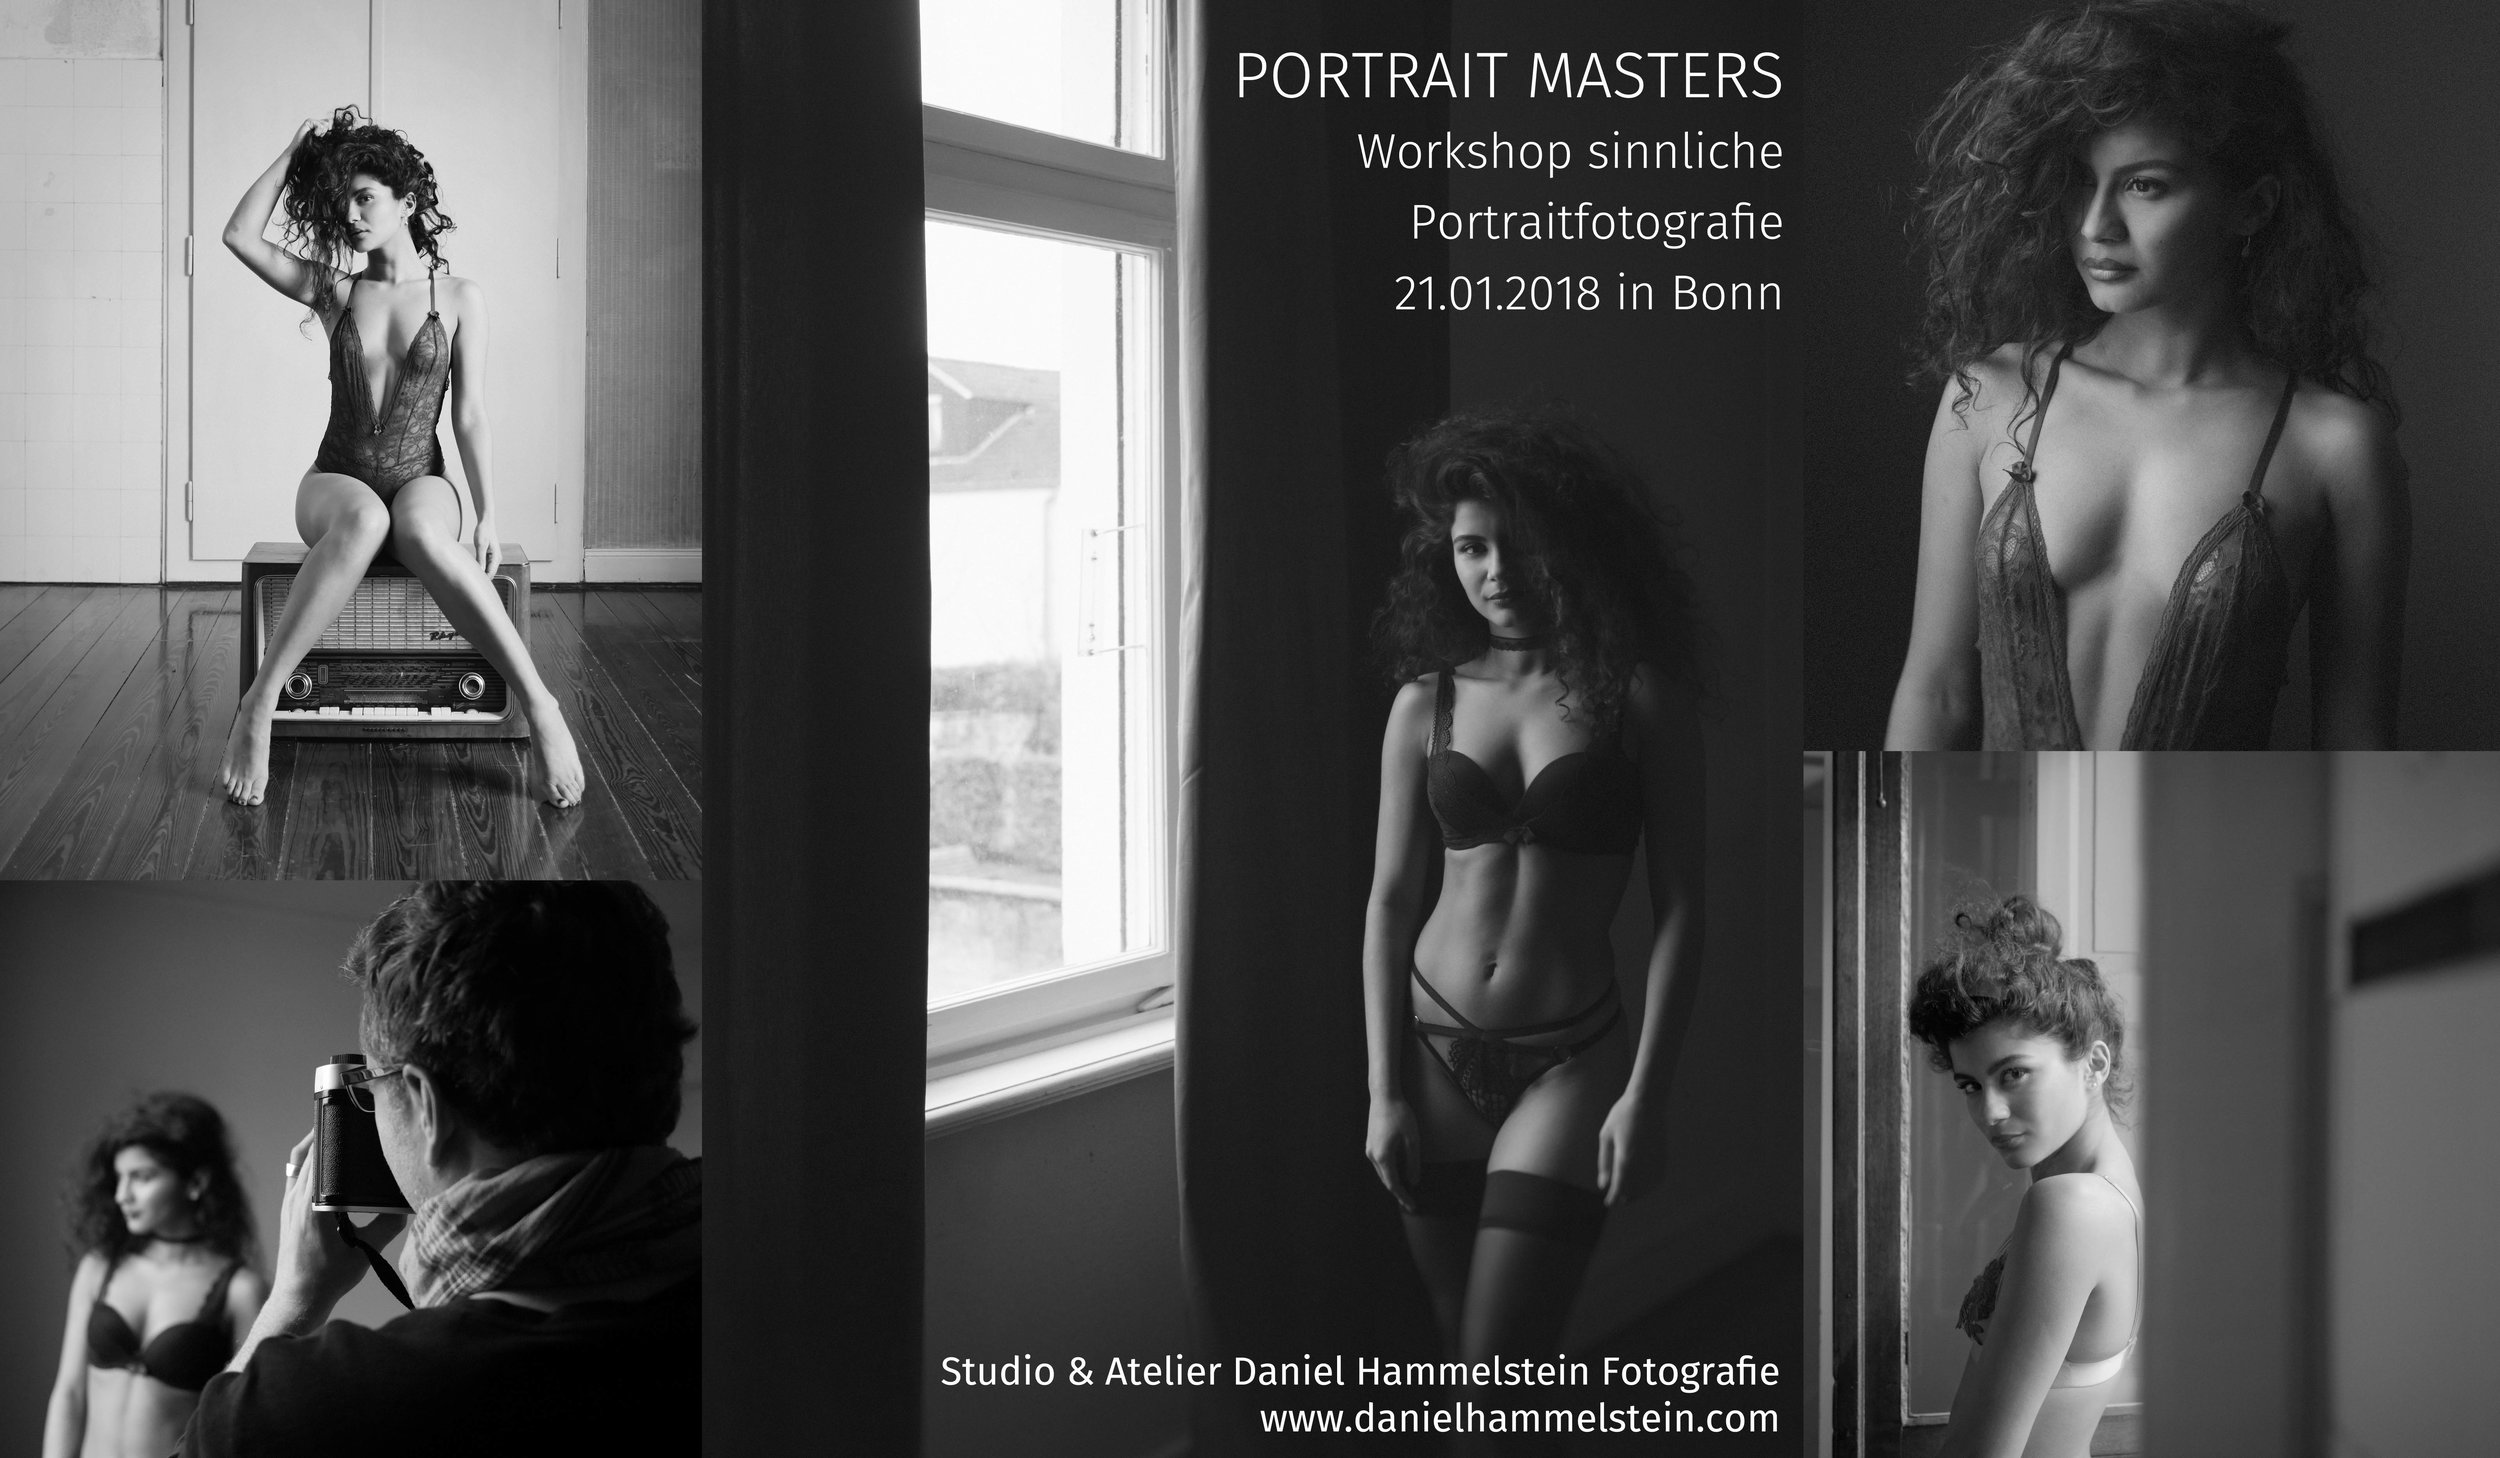 Workshop für Portraitfotografie Lingerie sinnliche Fotografie in Bonn